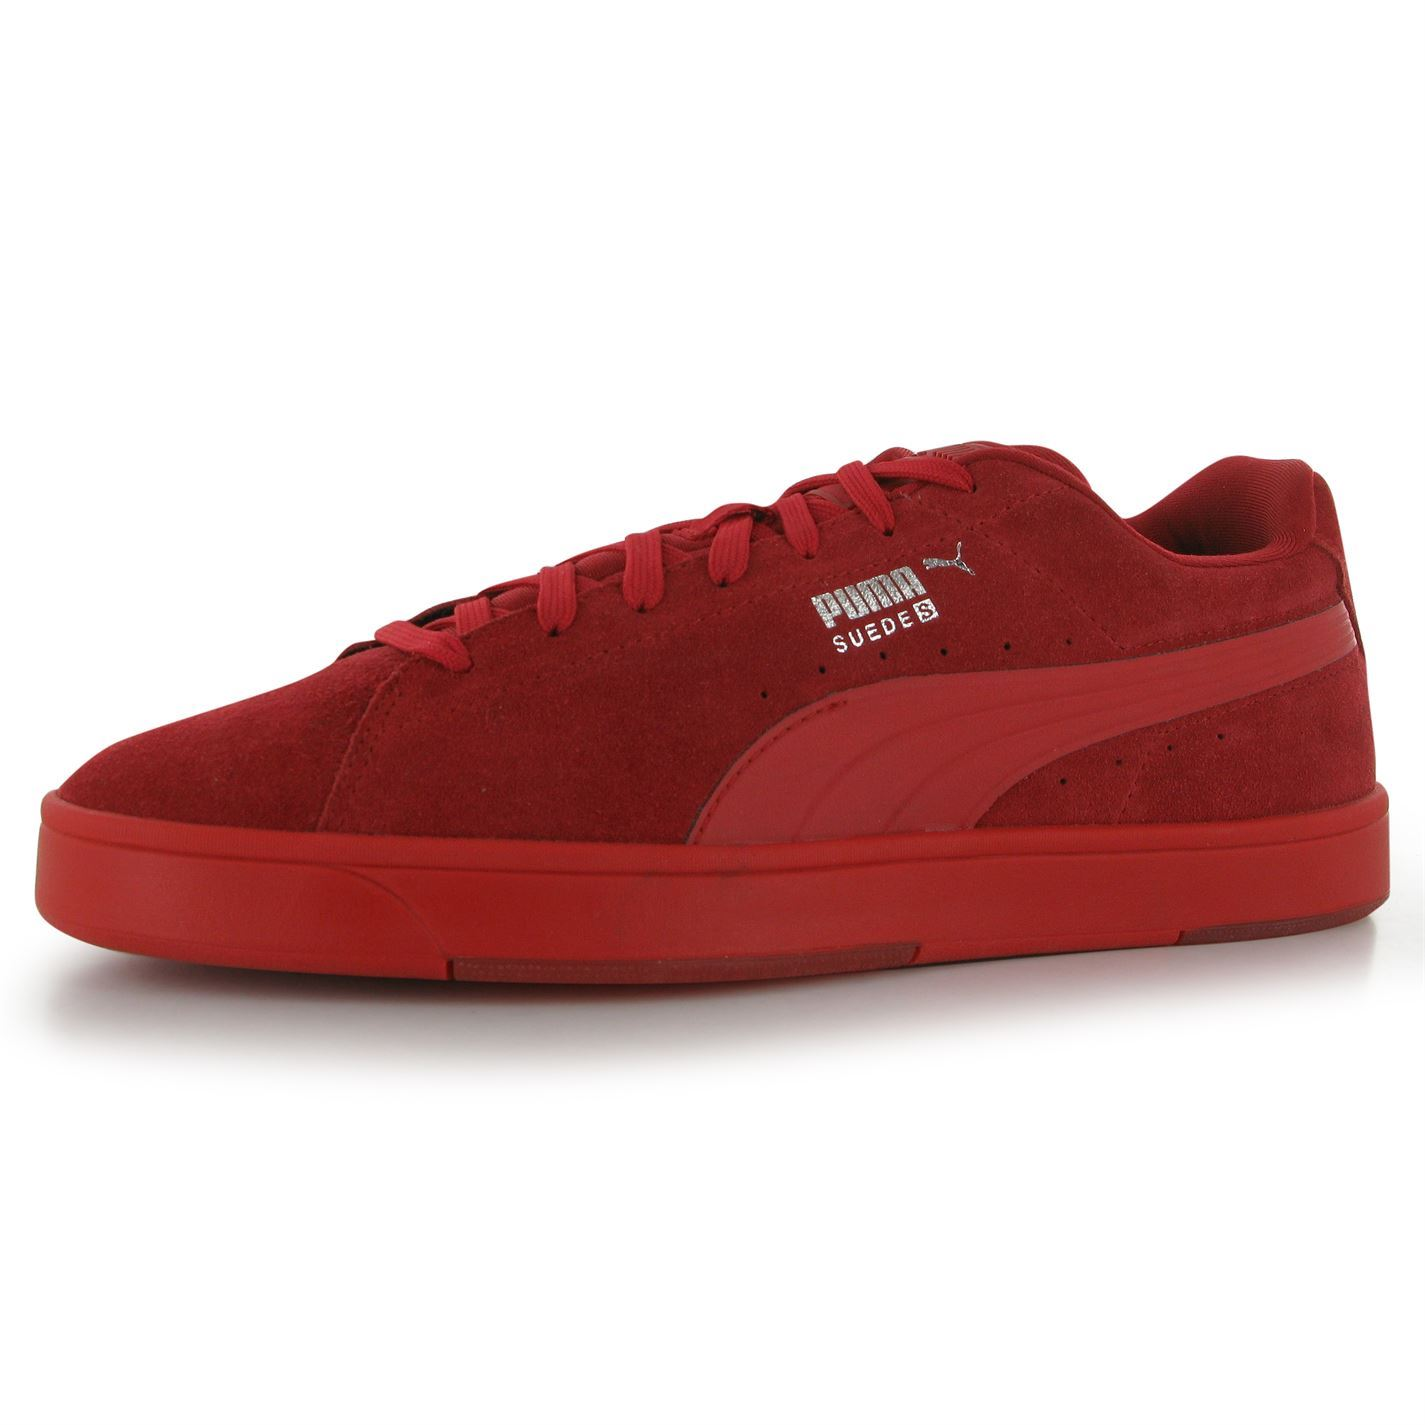 Puma Gents  Uomo Suede Sneakers Trainers Schuhes Cushioned Ankle Collar Laced Schuhes Trainers Pumps a49361